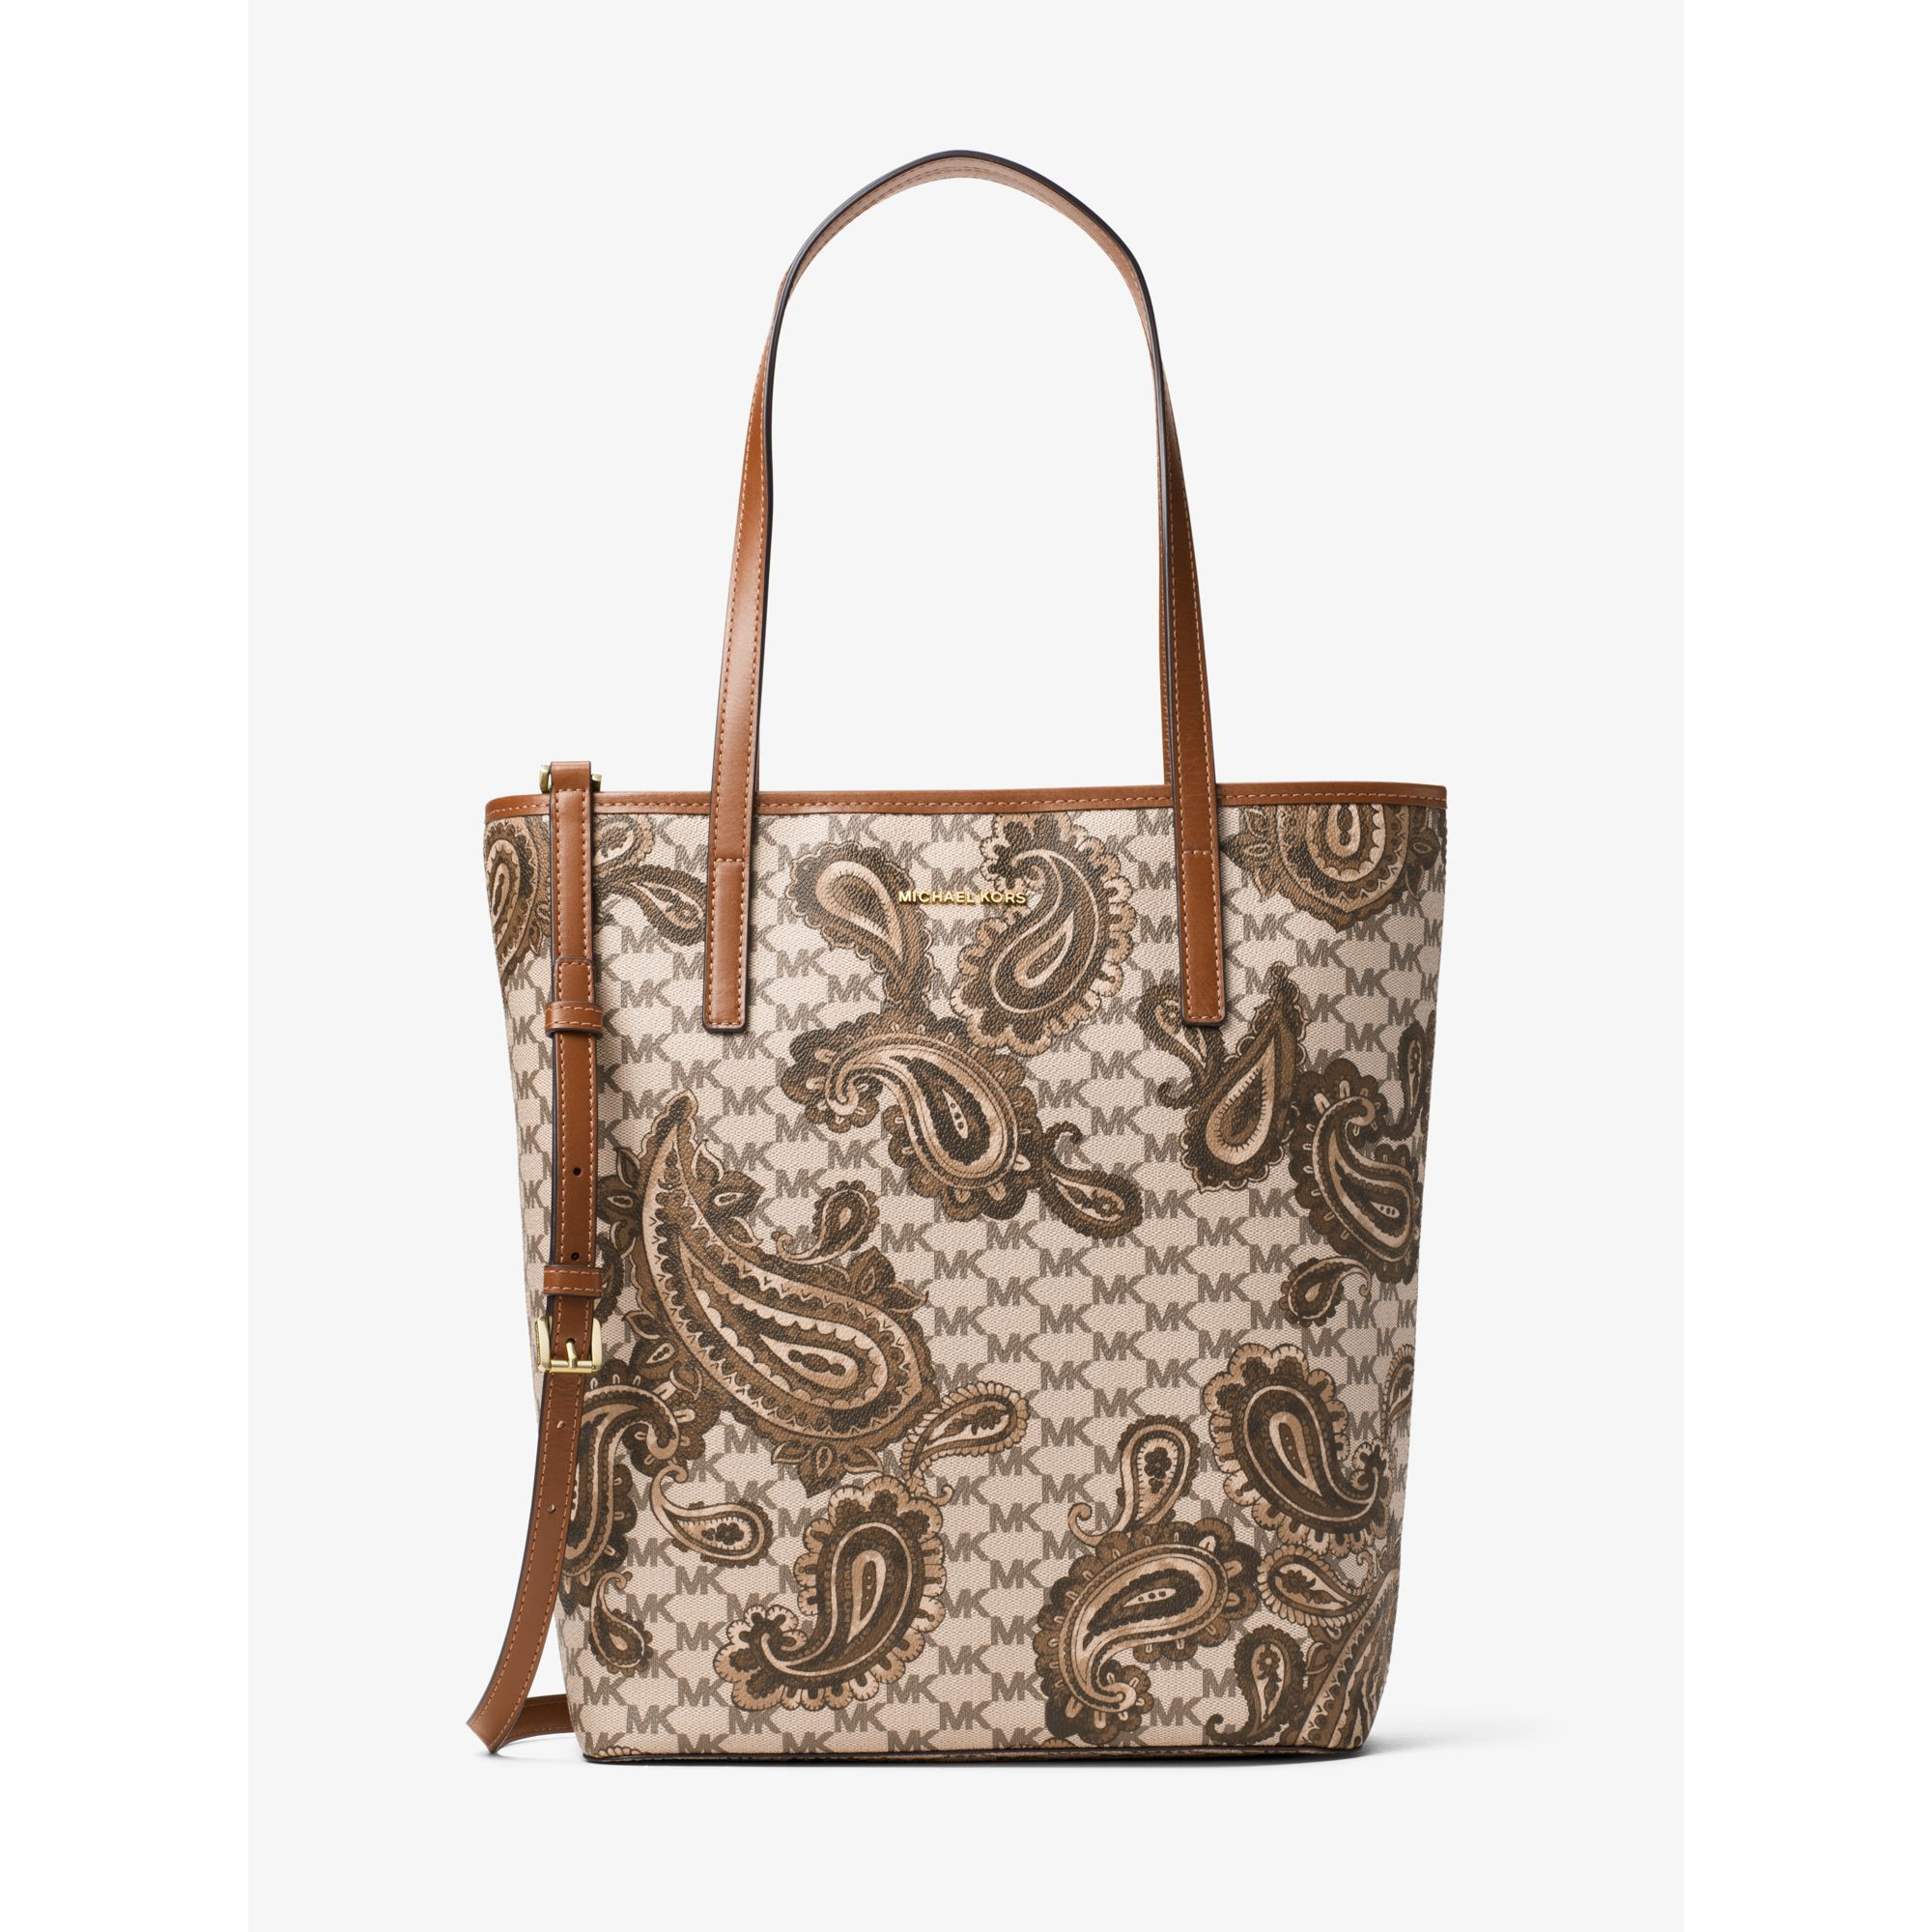 6537b8c904 ... australia lyst michael kors emry large north south heritage paisley tote  in 38a33 0e7cf